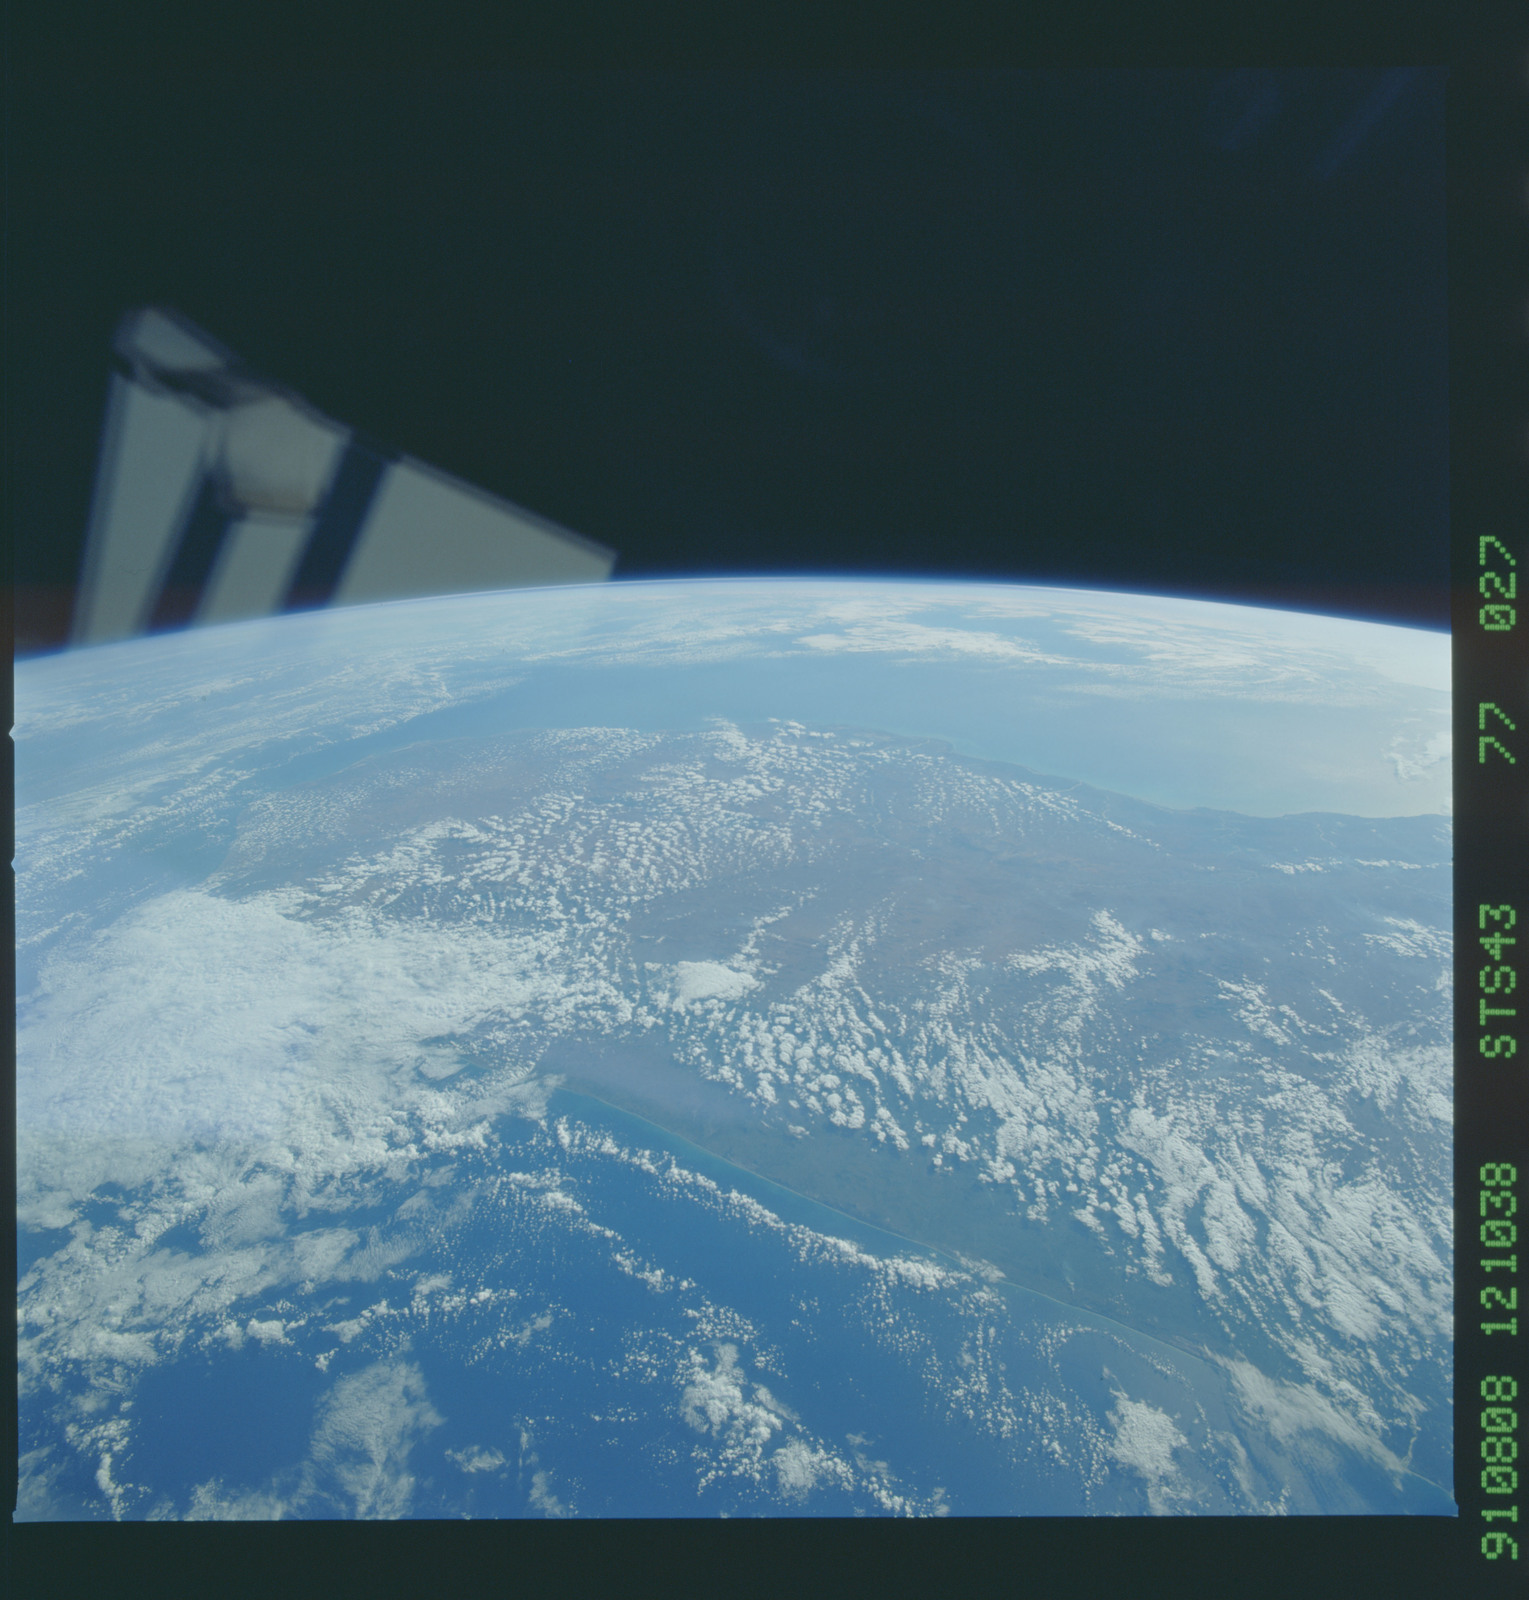 S43-77-027 - STS-043 - STS-43 earth observations